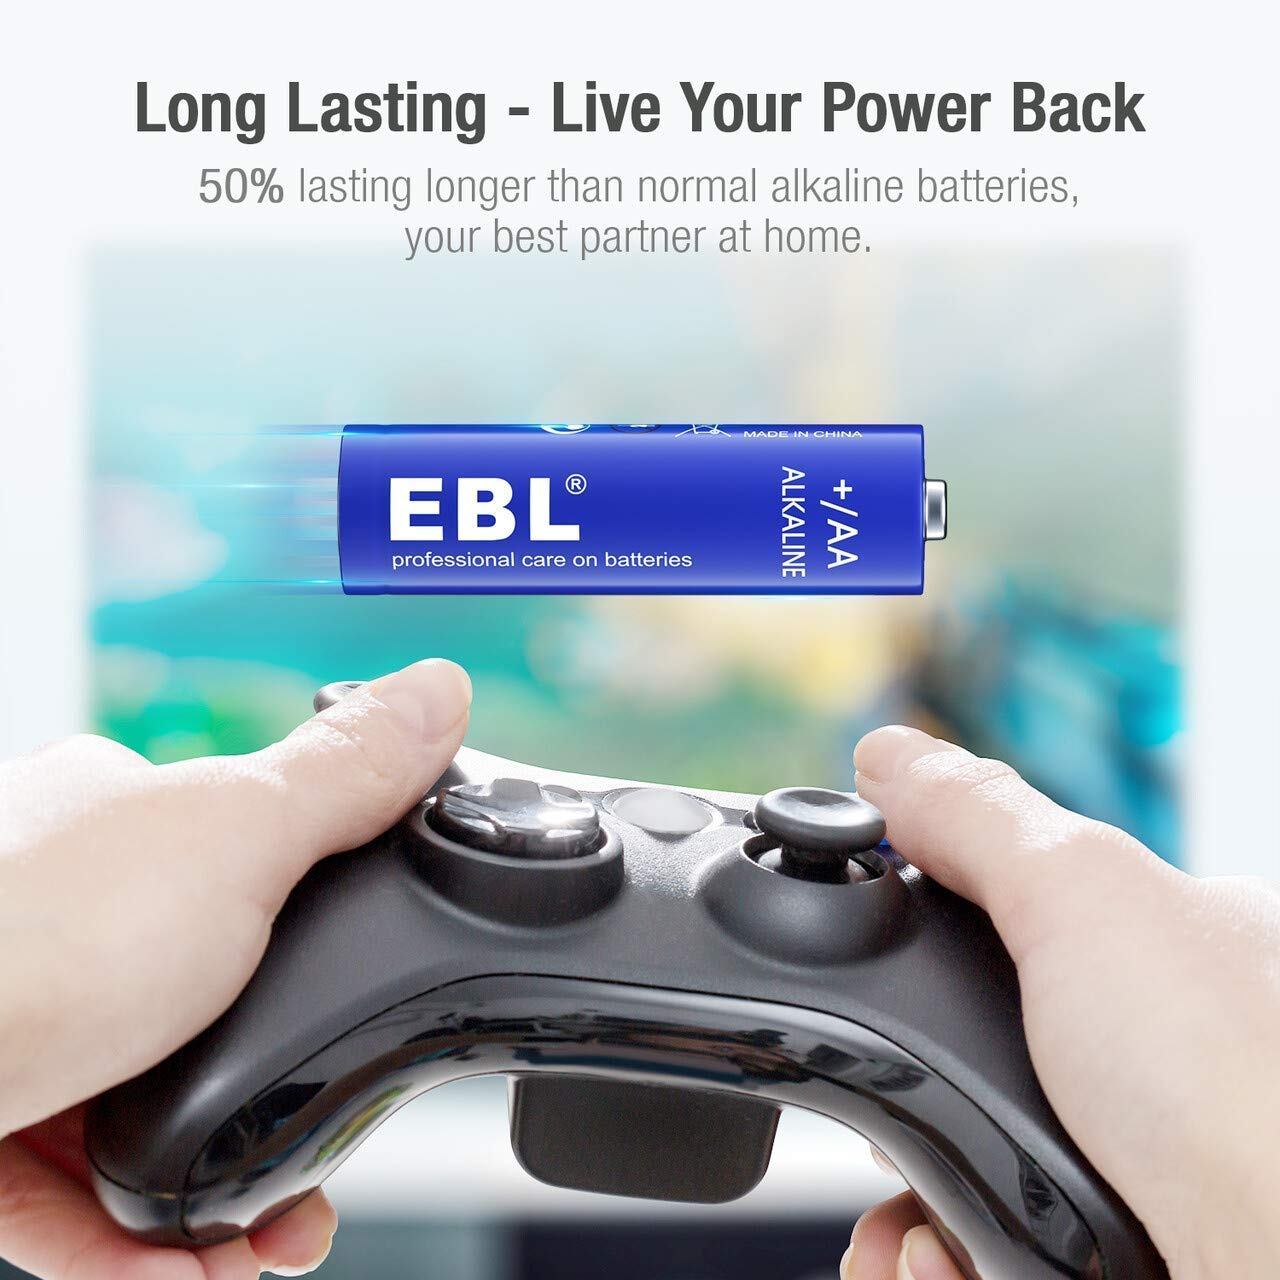 EBL AA Batteries 1.5V AA Alkaline Battery - Double A Homebasic Everyday AA Batteries for Game Controller, Mouse, Remote - Pack of 28